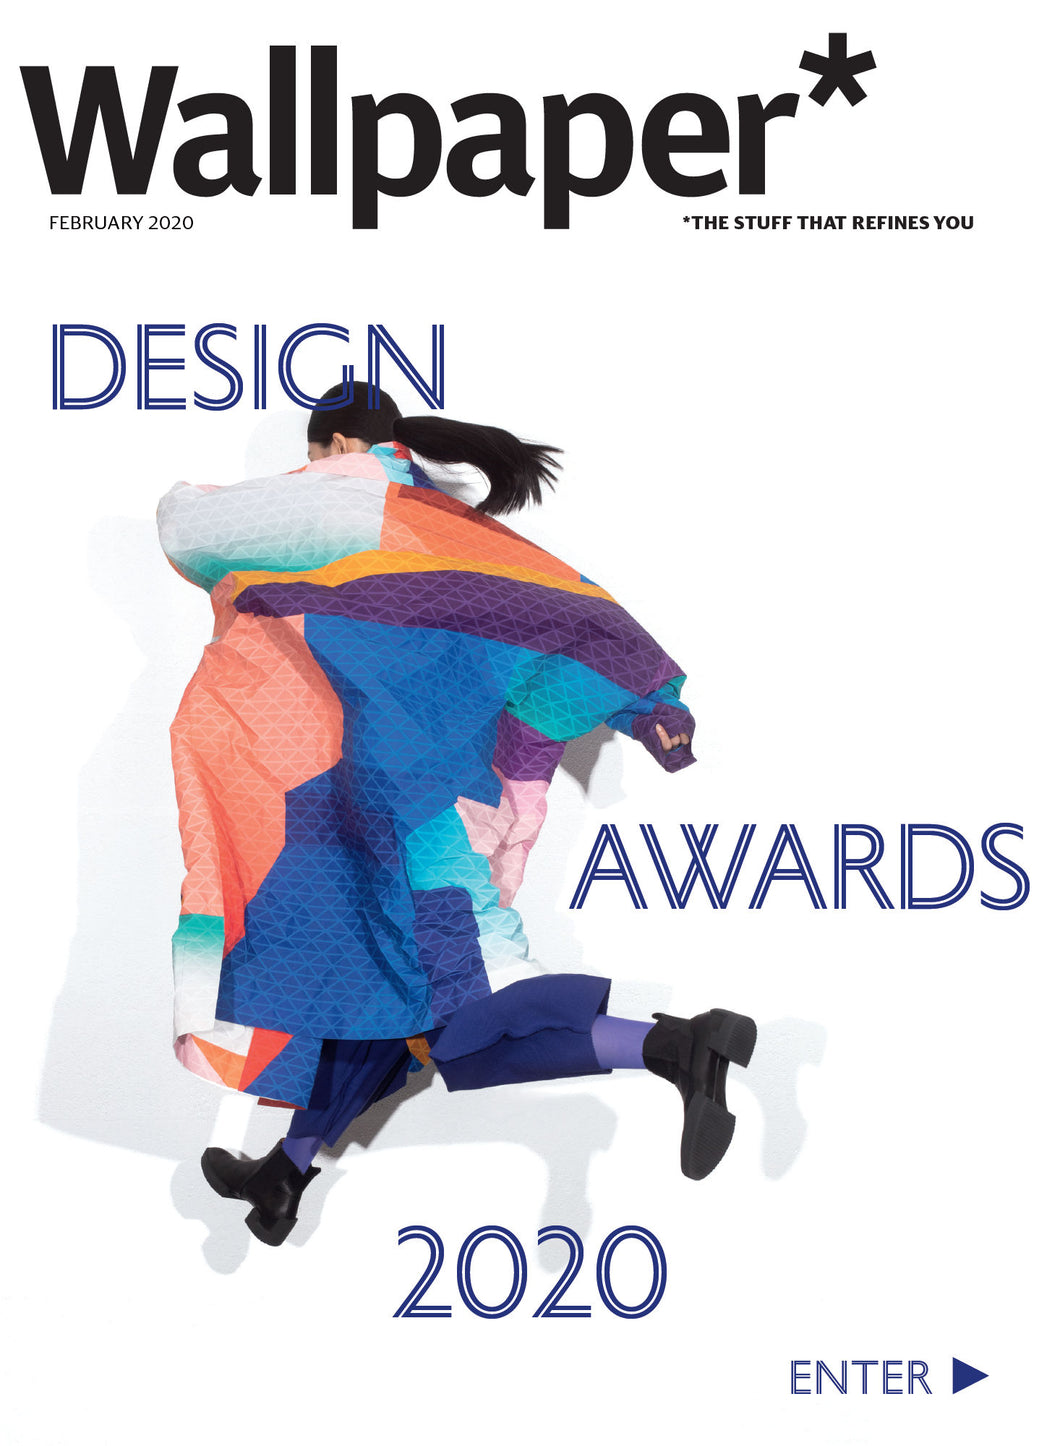 Wallpaper* - The Design Awards Issue - February 2020